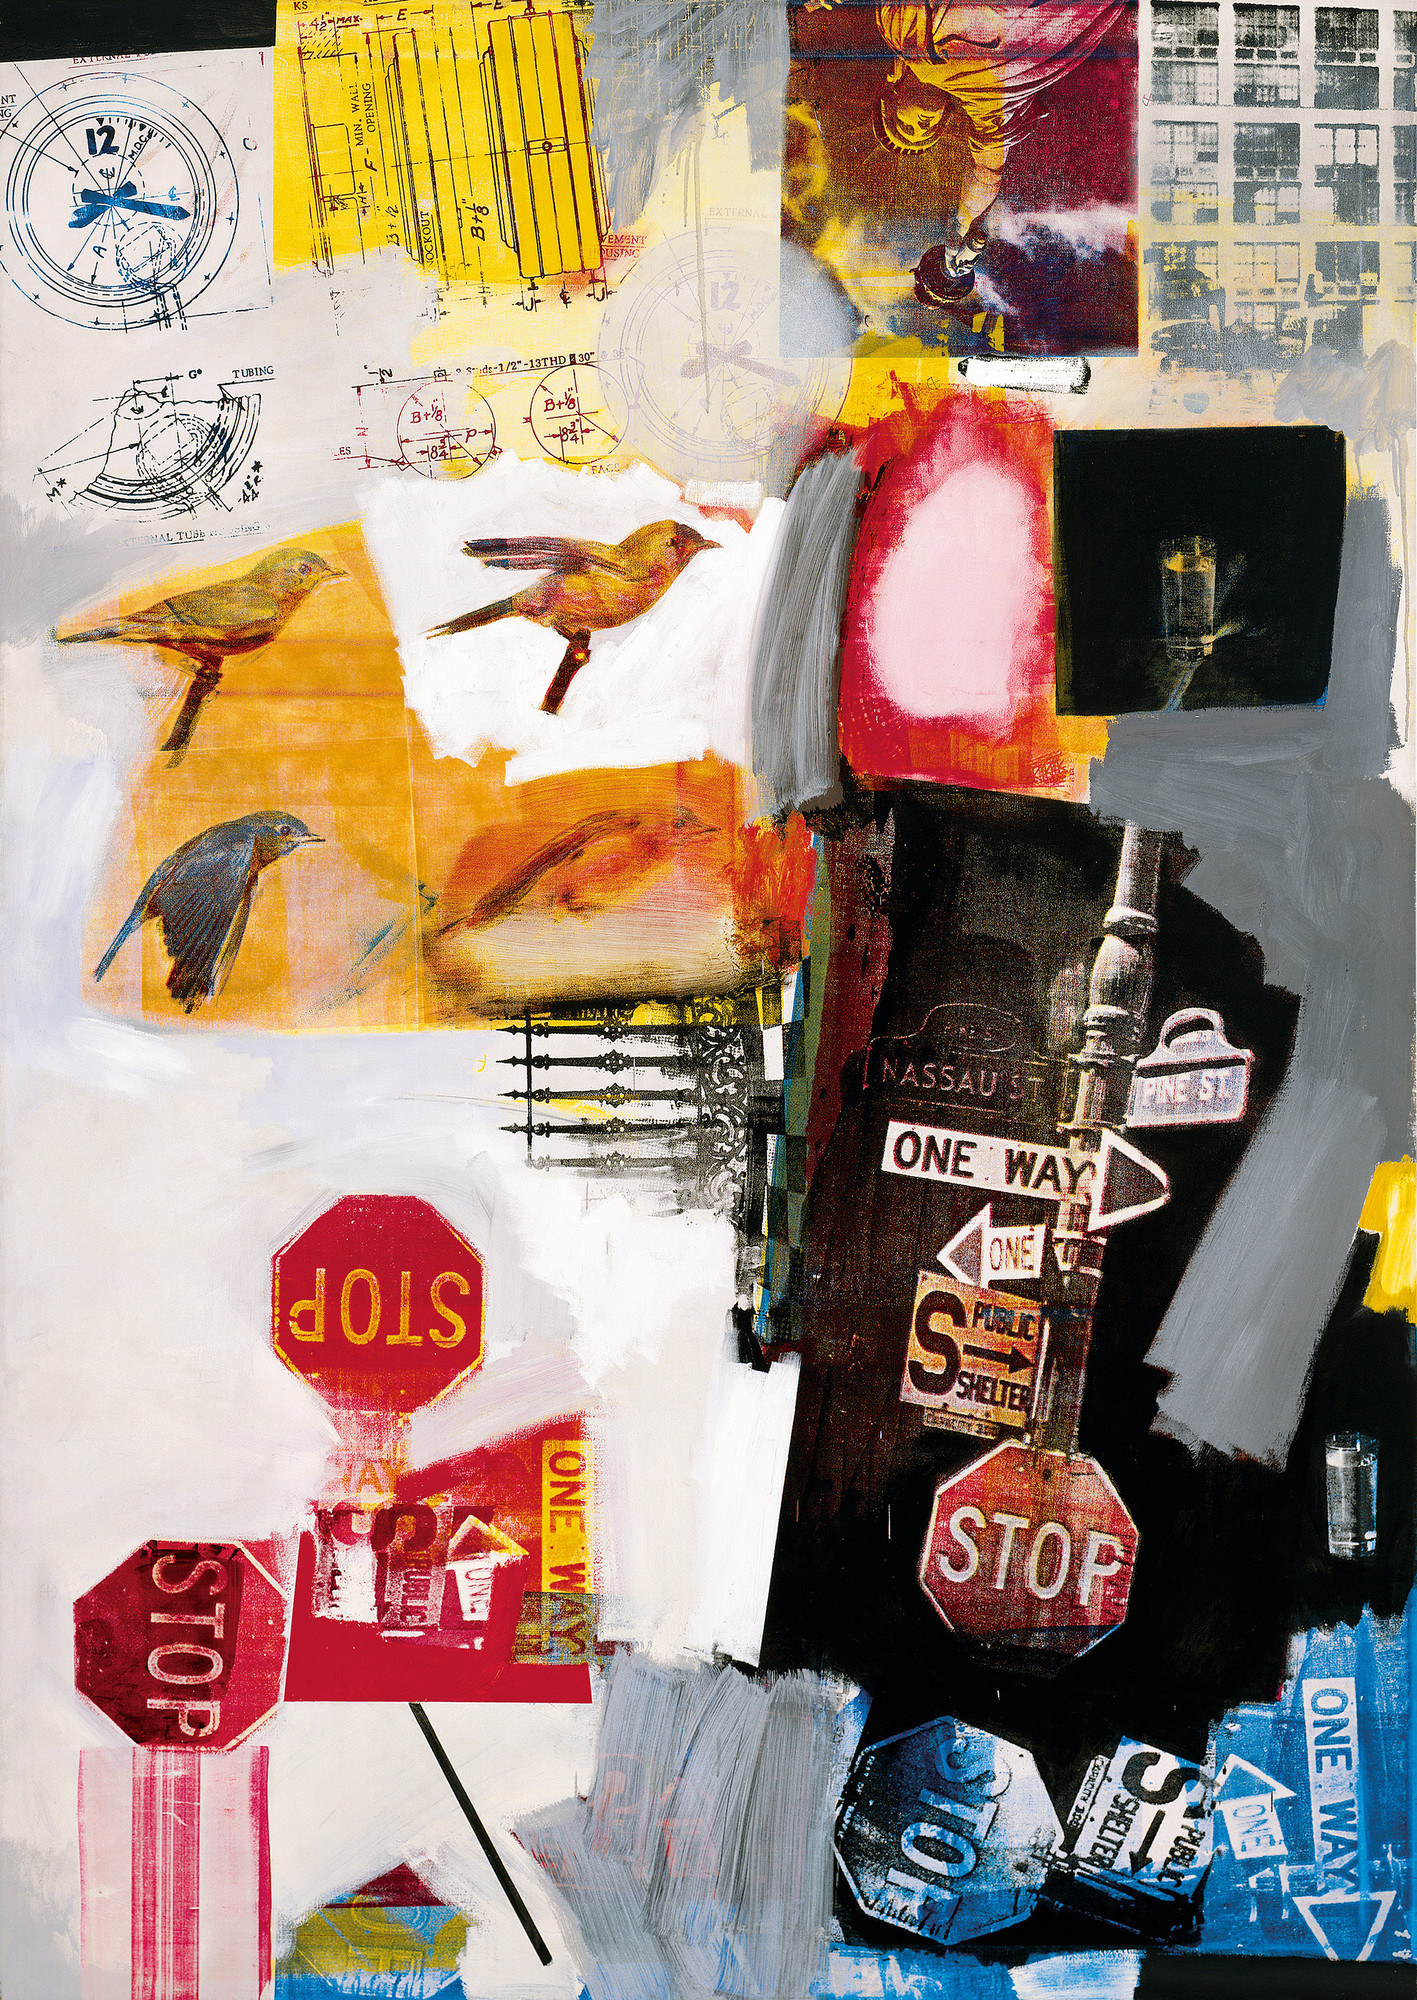 "Robert Rauschenberg. Overdrive. 1963. Oil and silkscreen ink on canvas, 84 x 60"". The Museum of Modern Art, New York. Promised gift of Glenn and Eva Dubin. © Robert Rauschenberg Foundation"